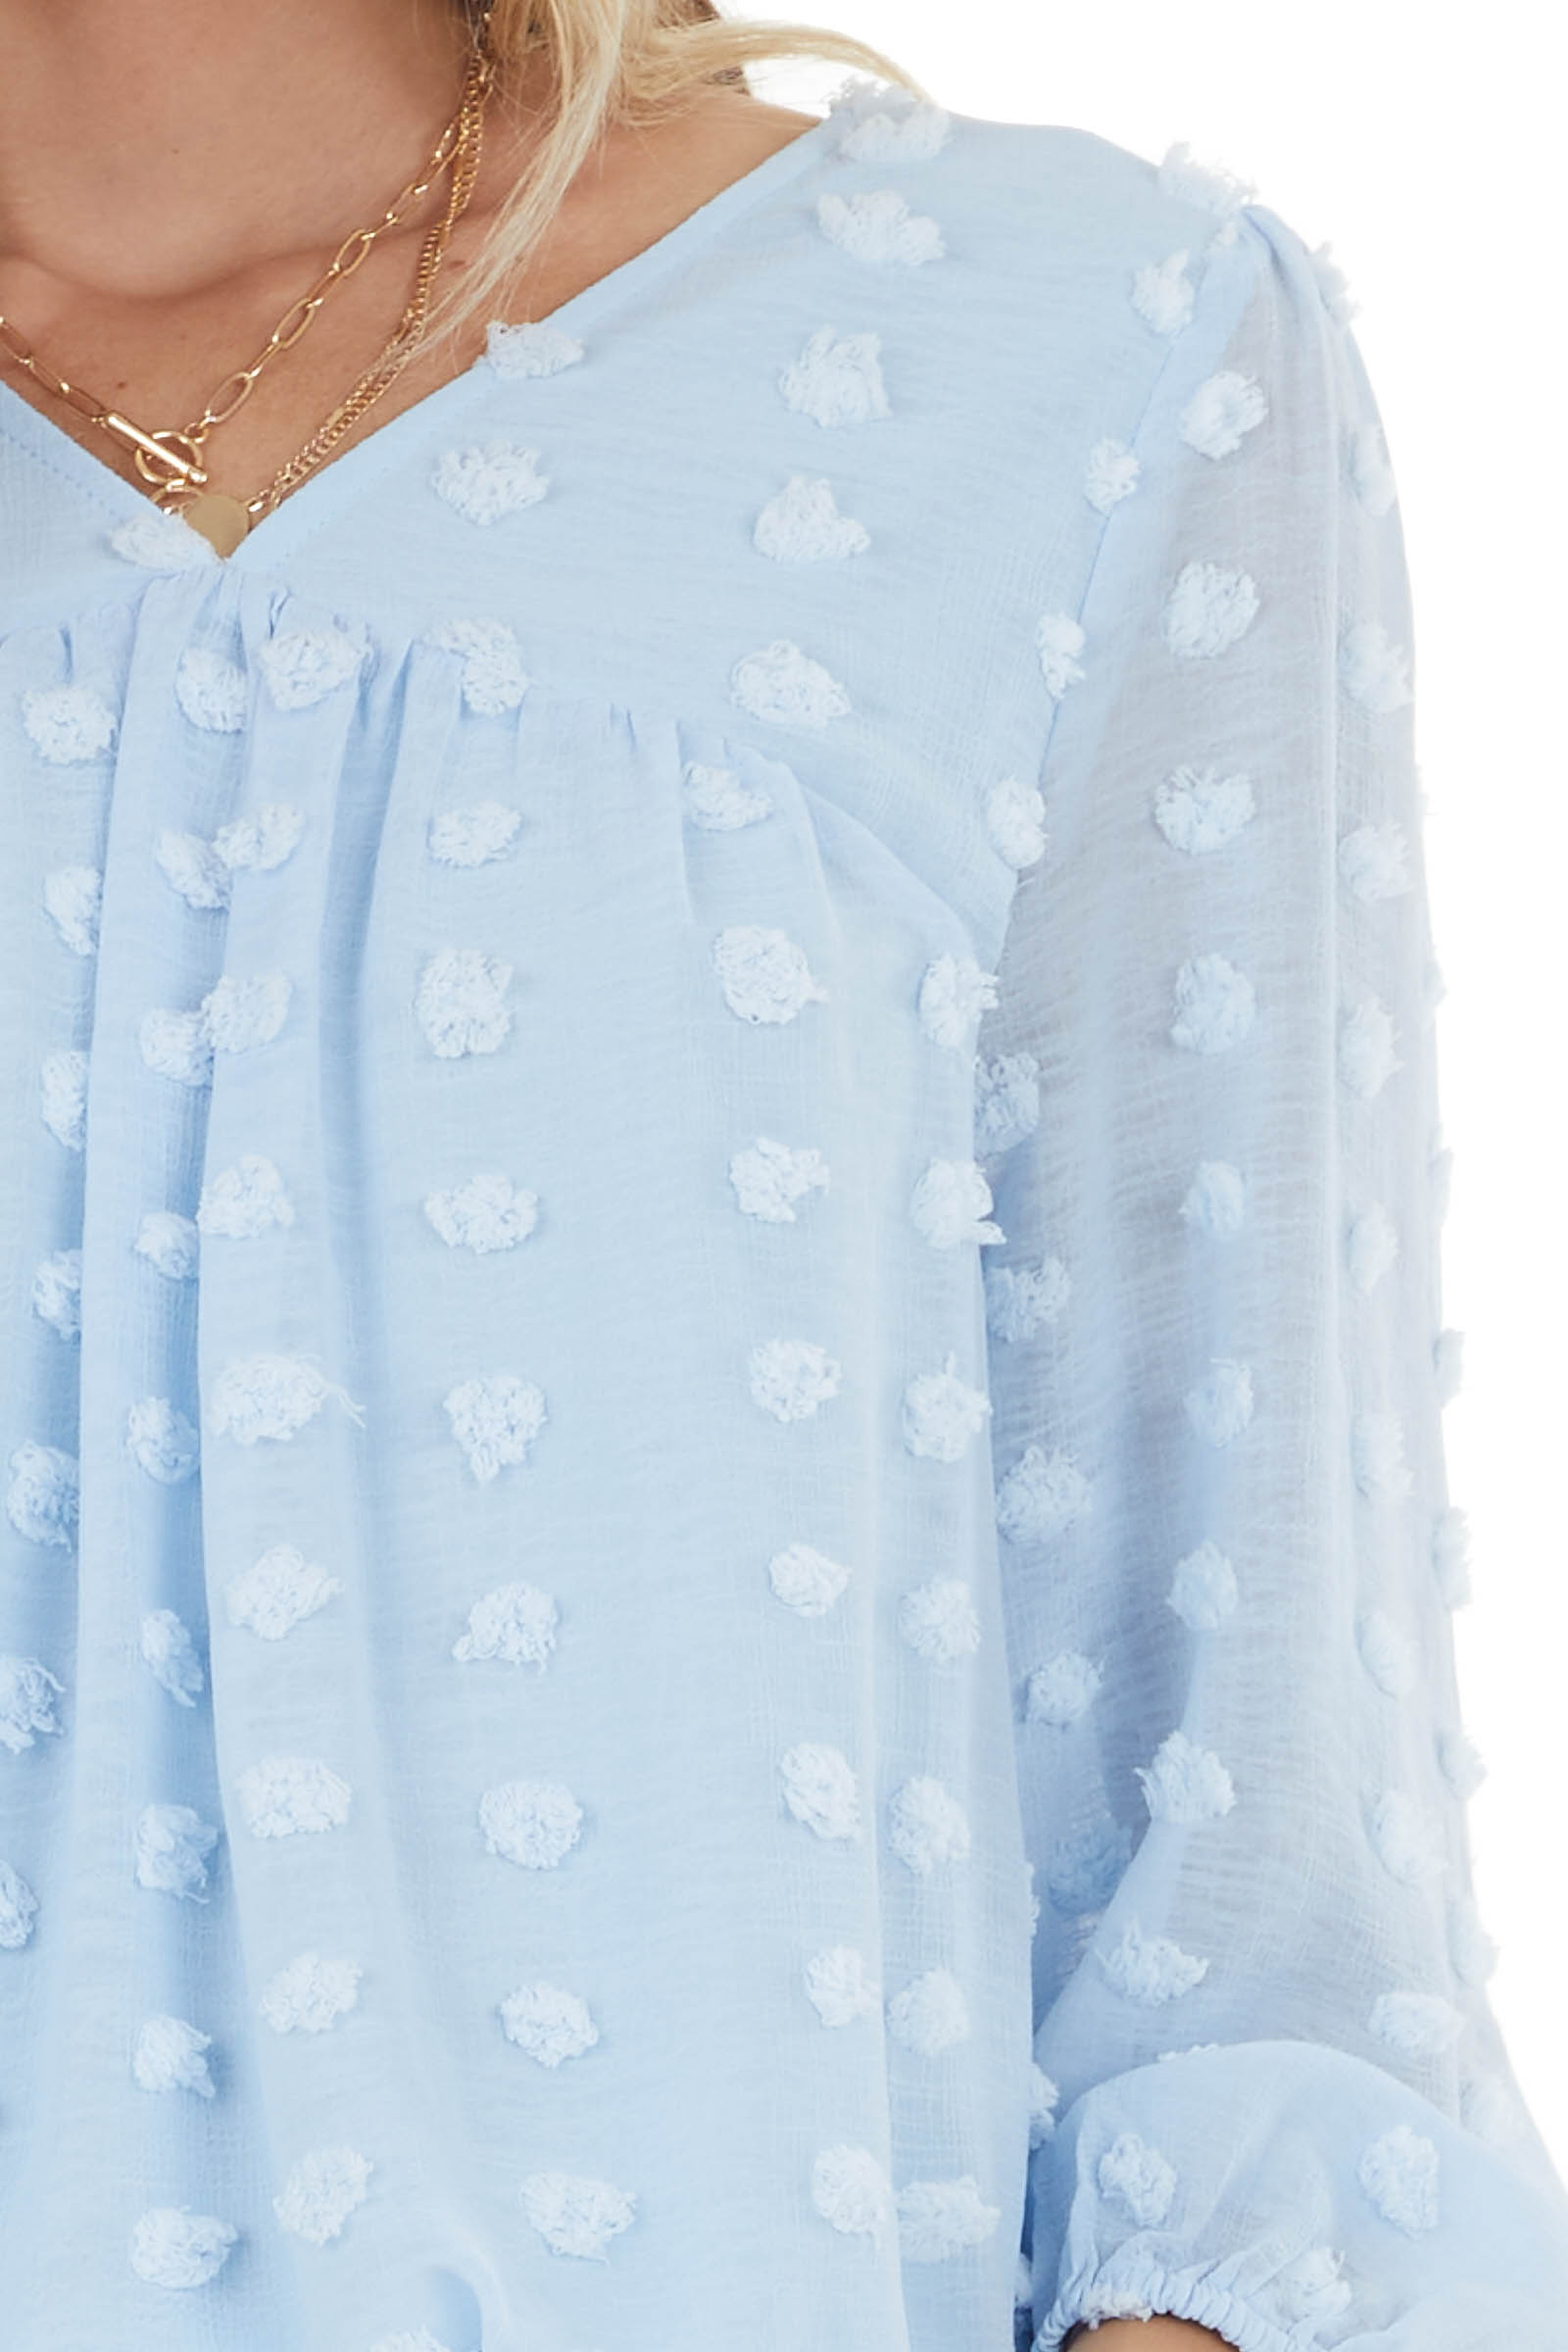 Baby Blue Swiss Dot Babydoll Top with Long Bubble Sleeves